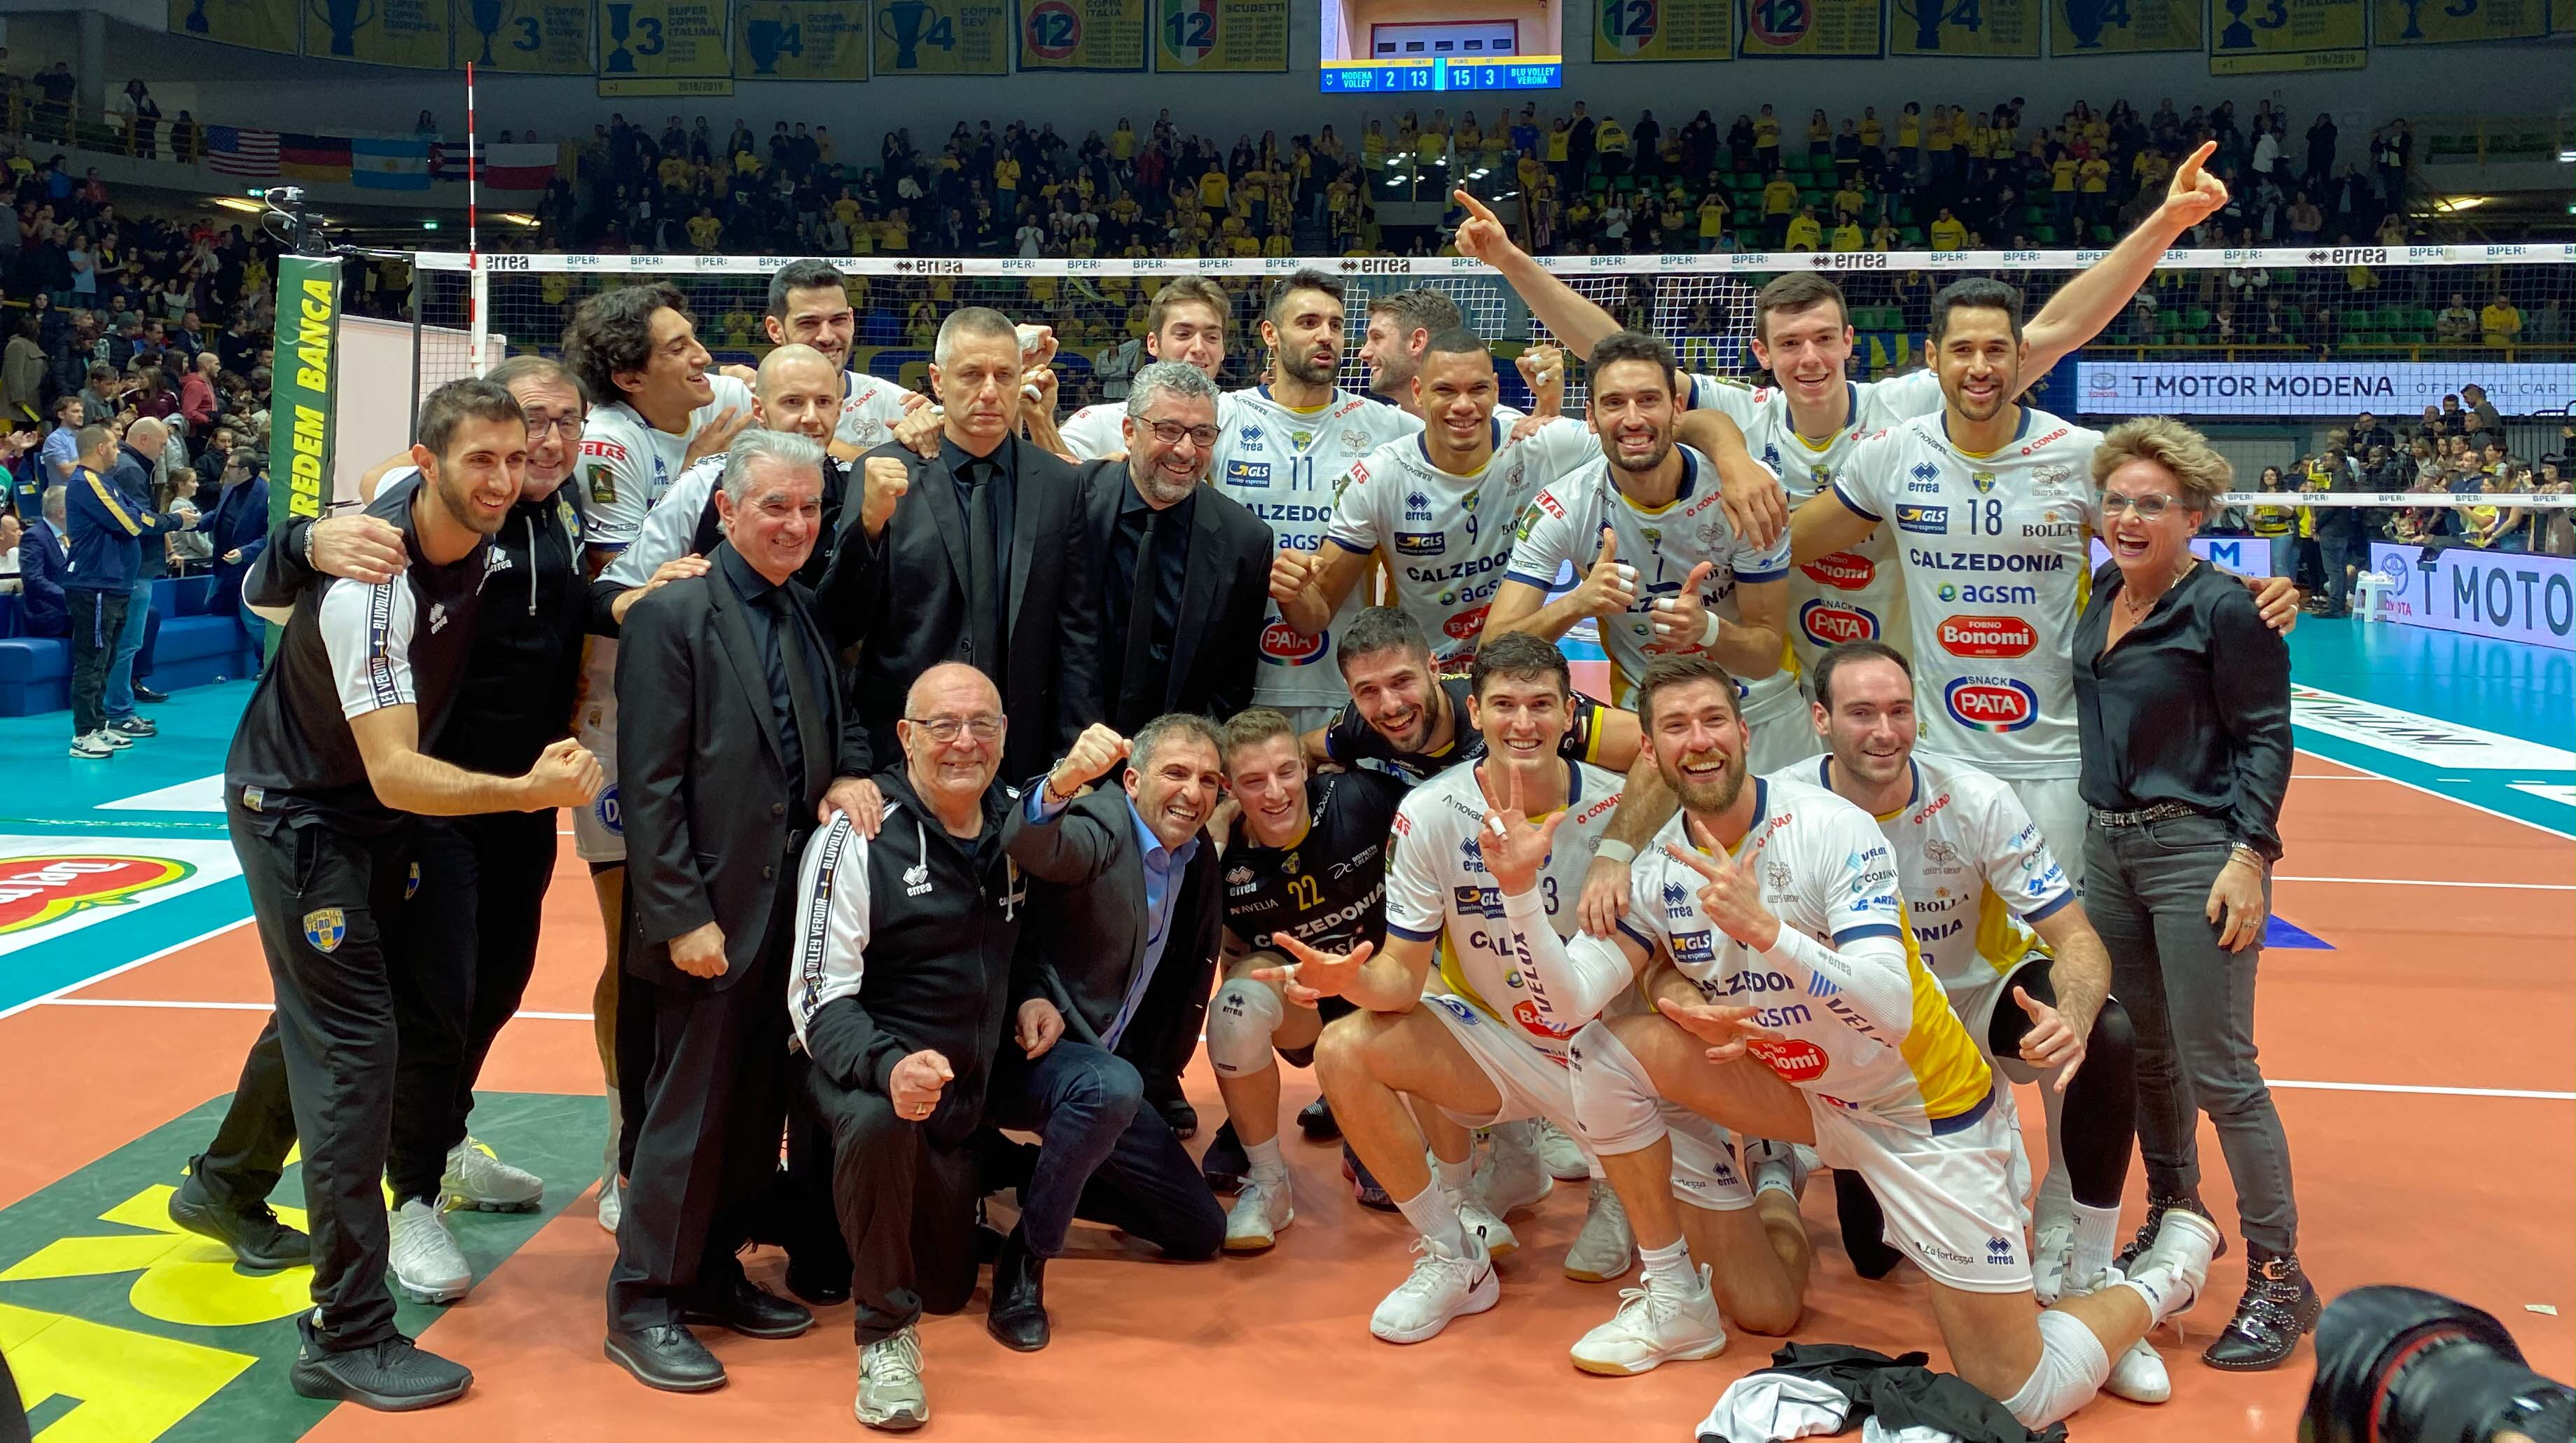 Italy: Verona inflict first home defeat to Modena, surreal performance for Abdel-Aziz – 41 points against Piacenza!